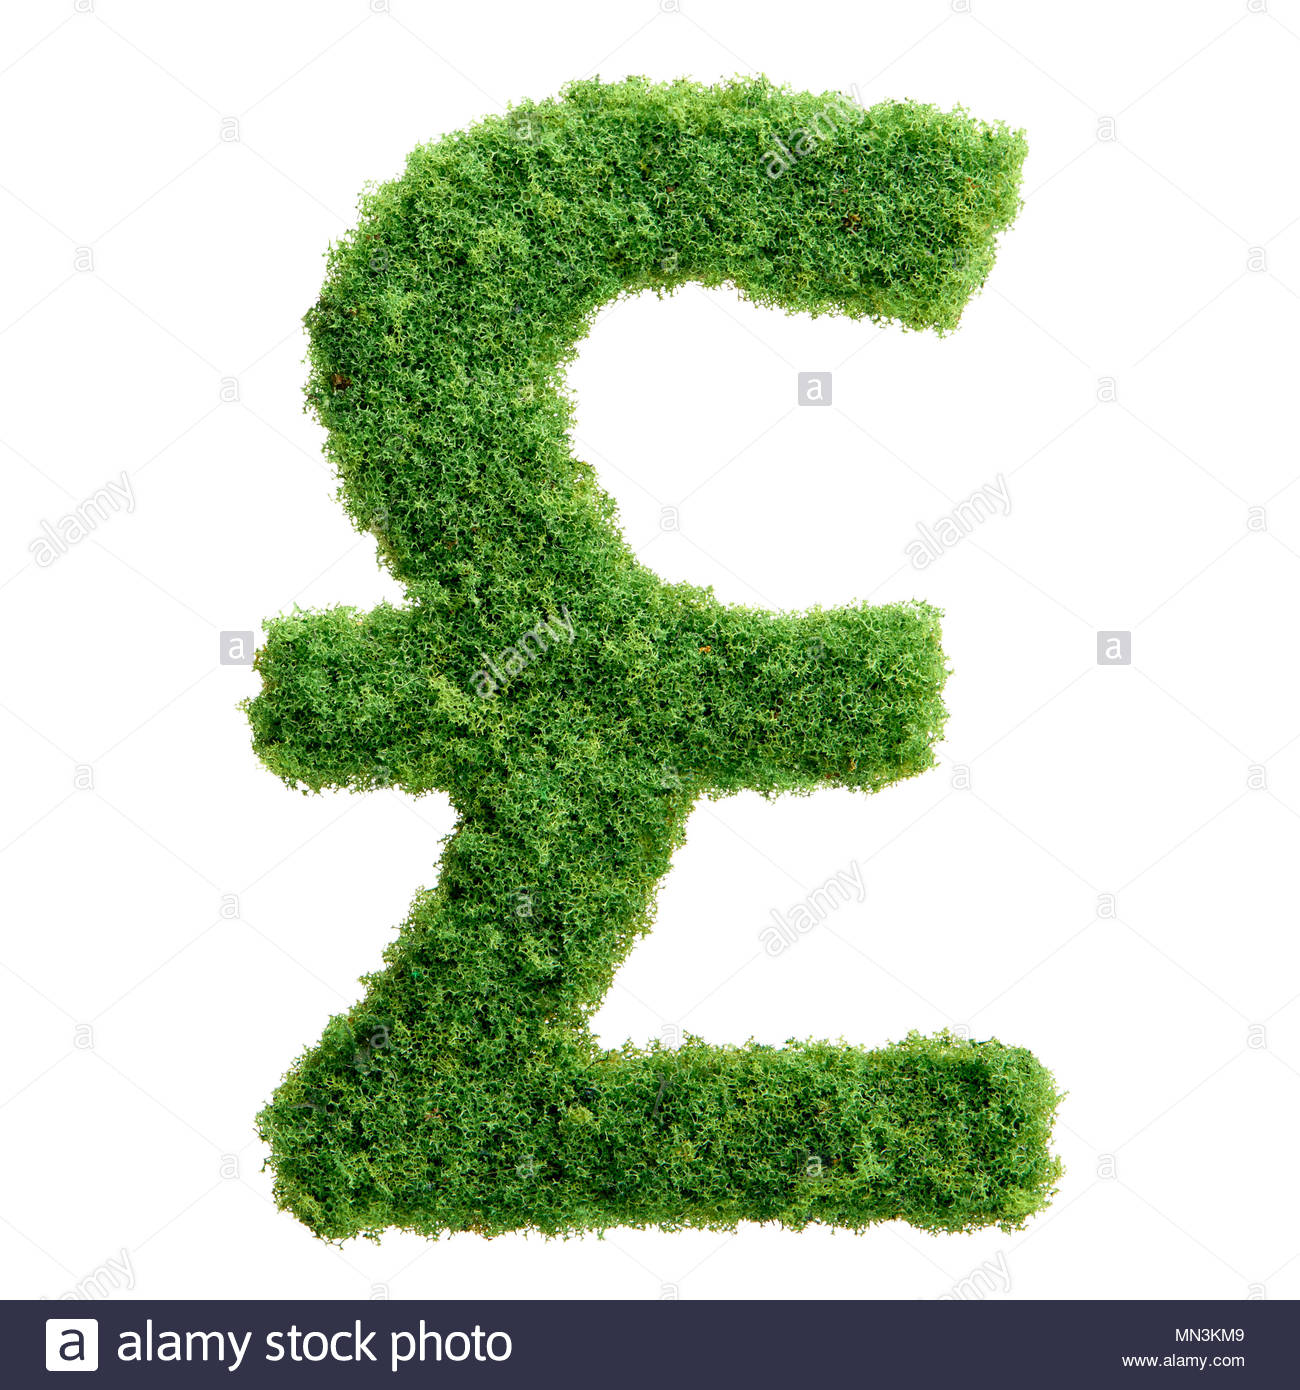 Grass Growing In The Shape Of British Pound Symbol Clean Eco